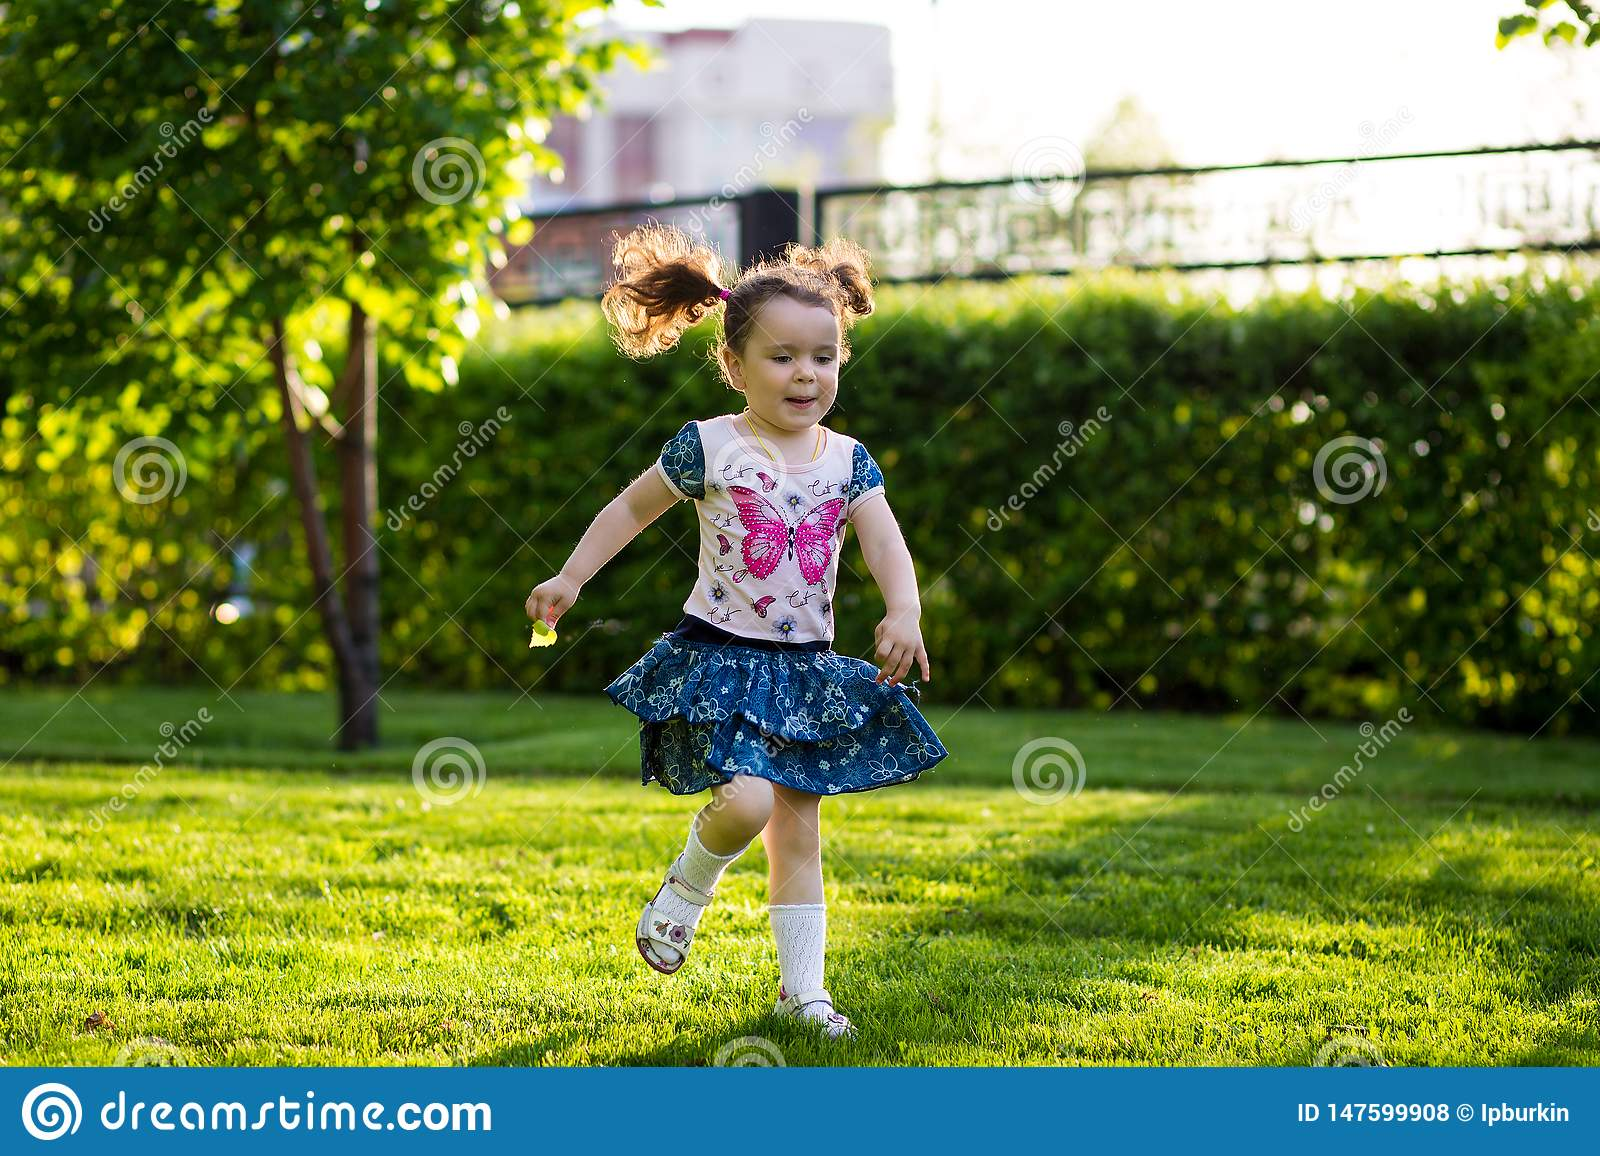 Funny girls walking on the lawn with her mother. Sisters play together with mom. maternal care. happy family